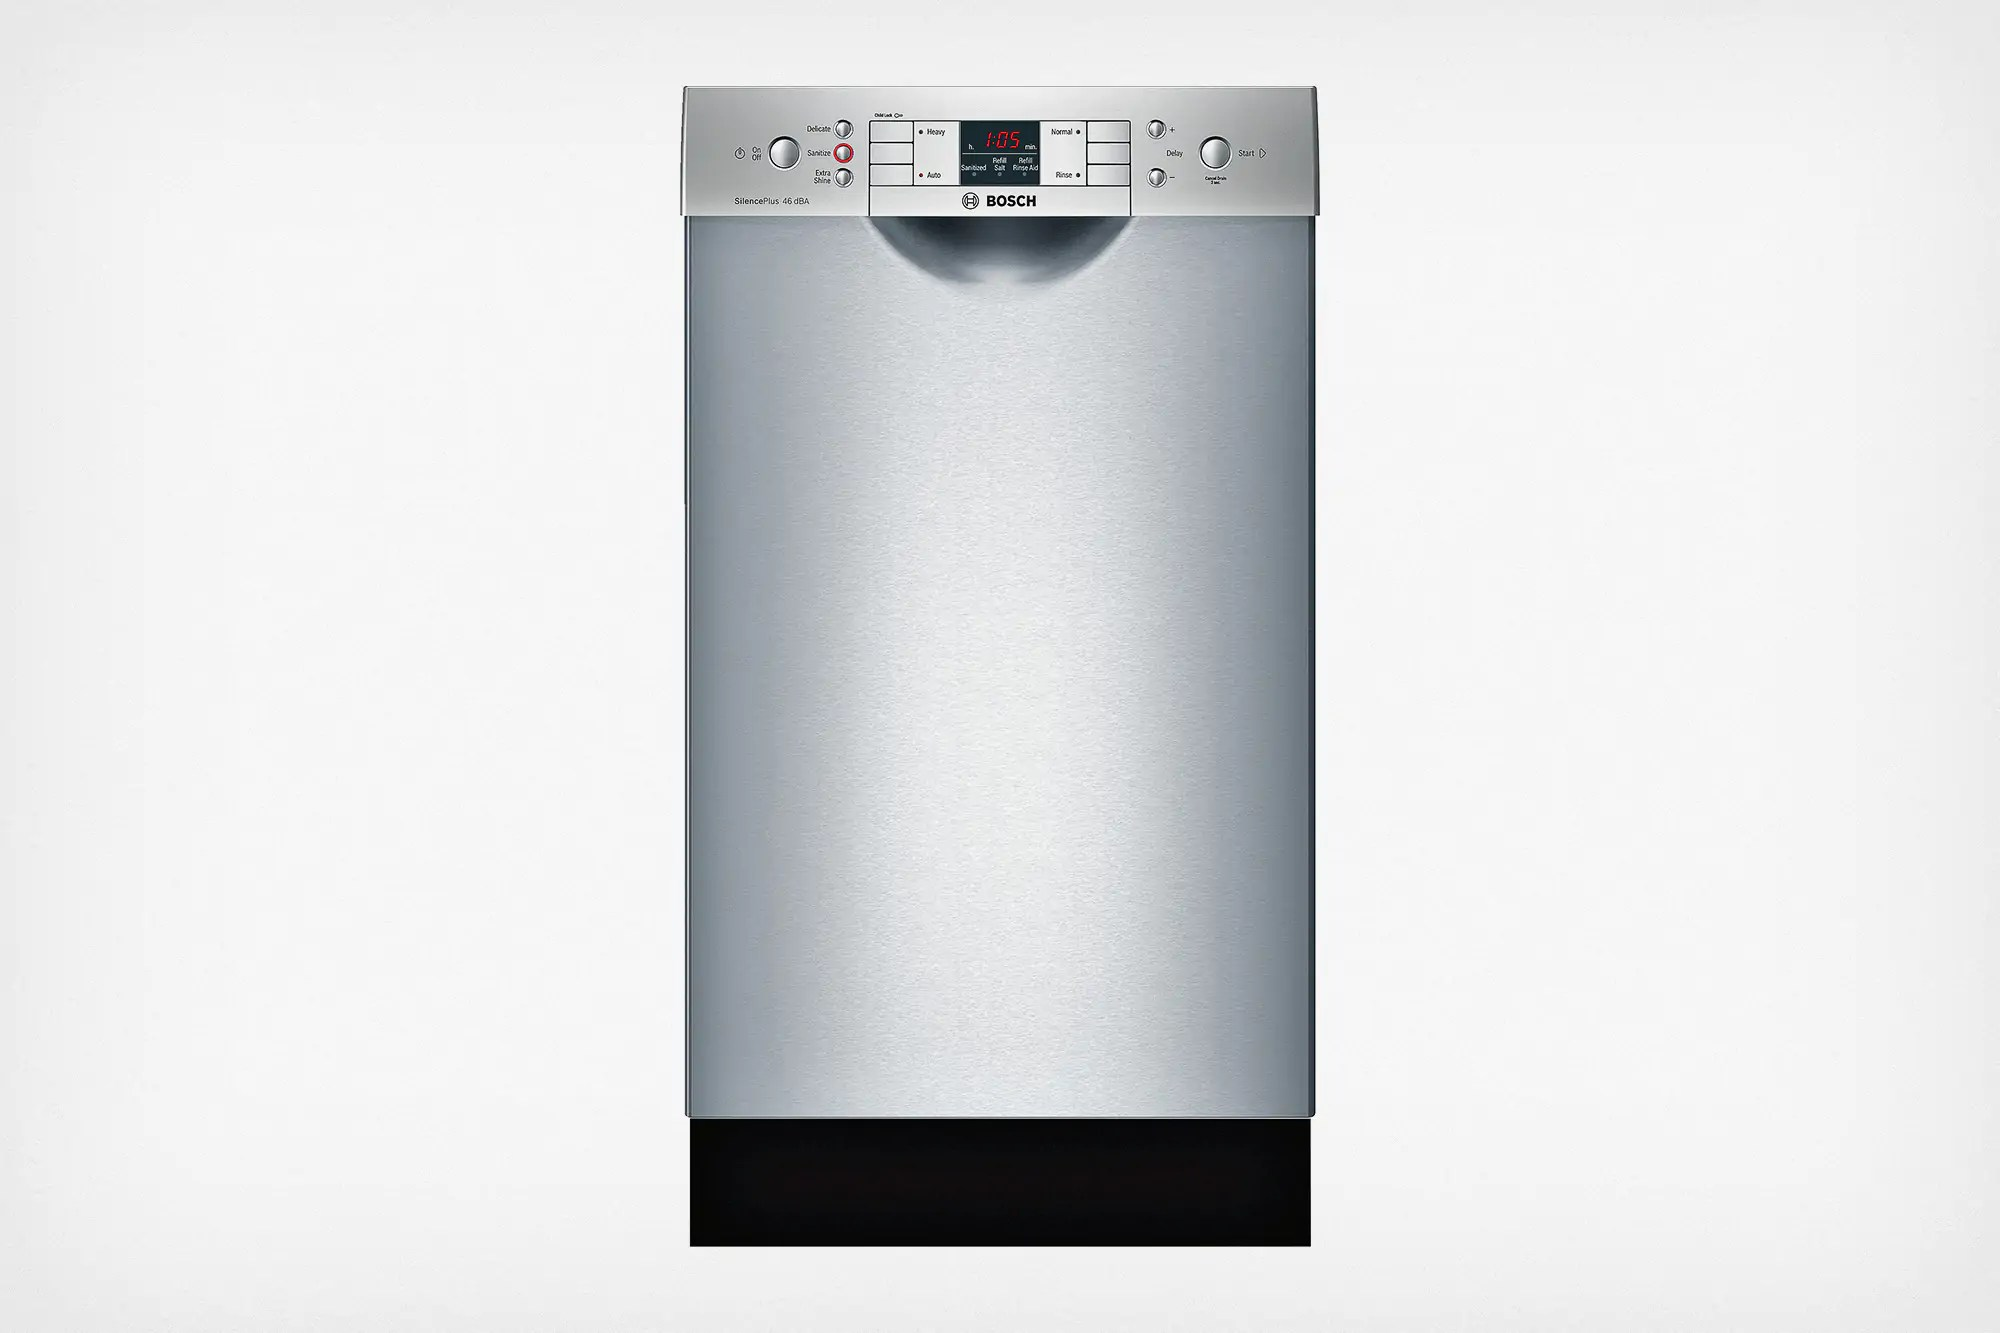 Dishwasher Dimensions Inches The Best Dishwasher Aivanet